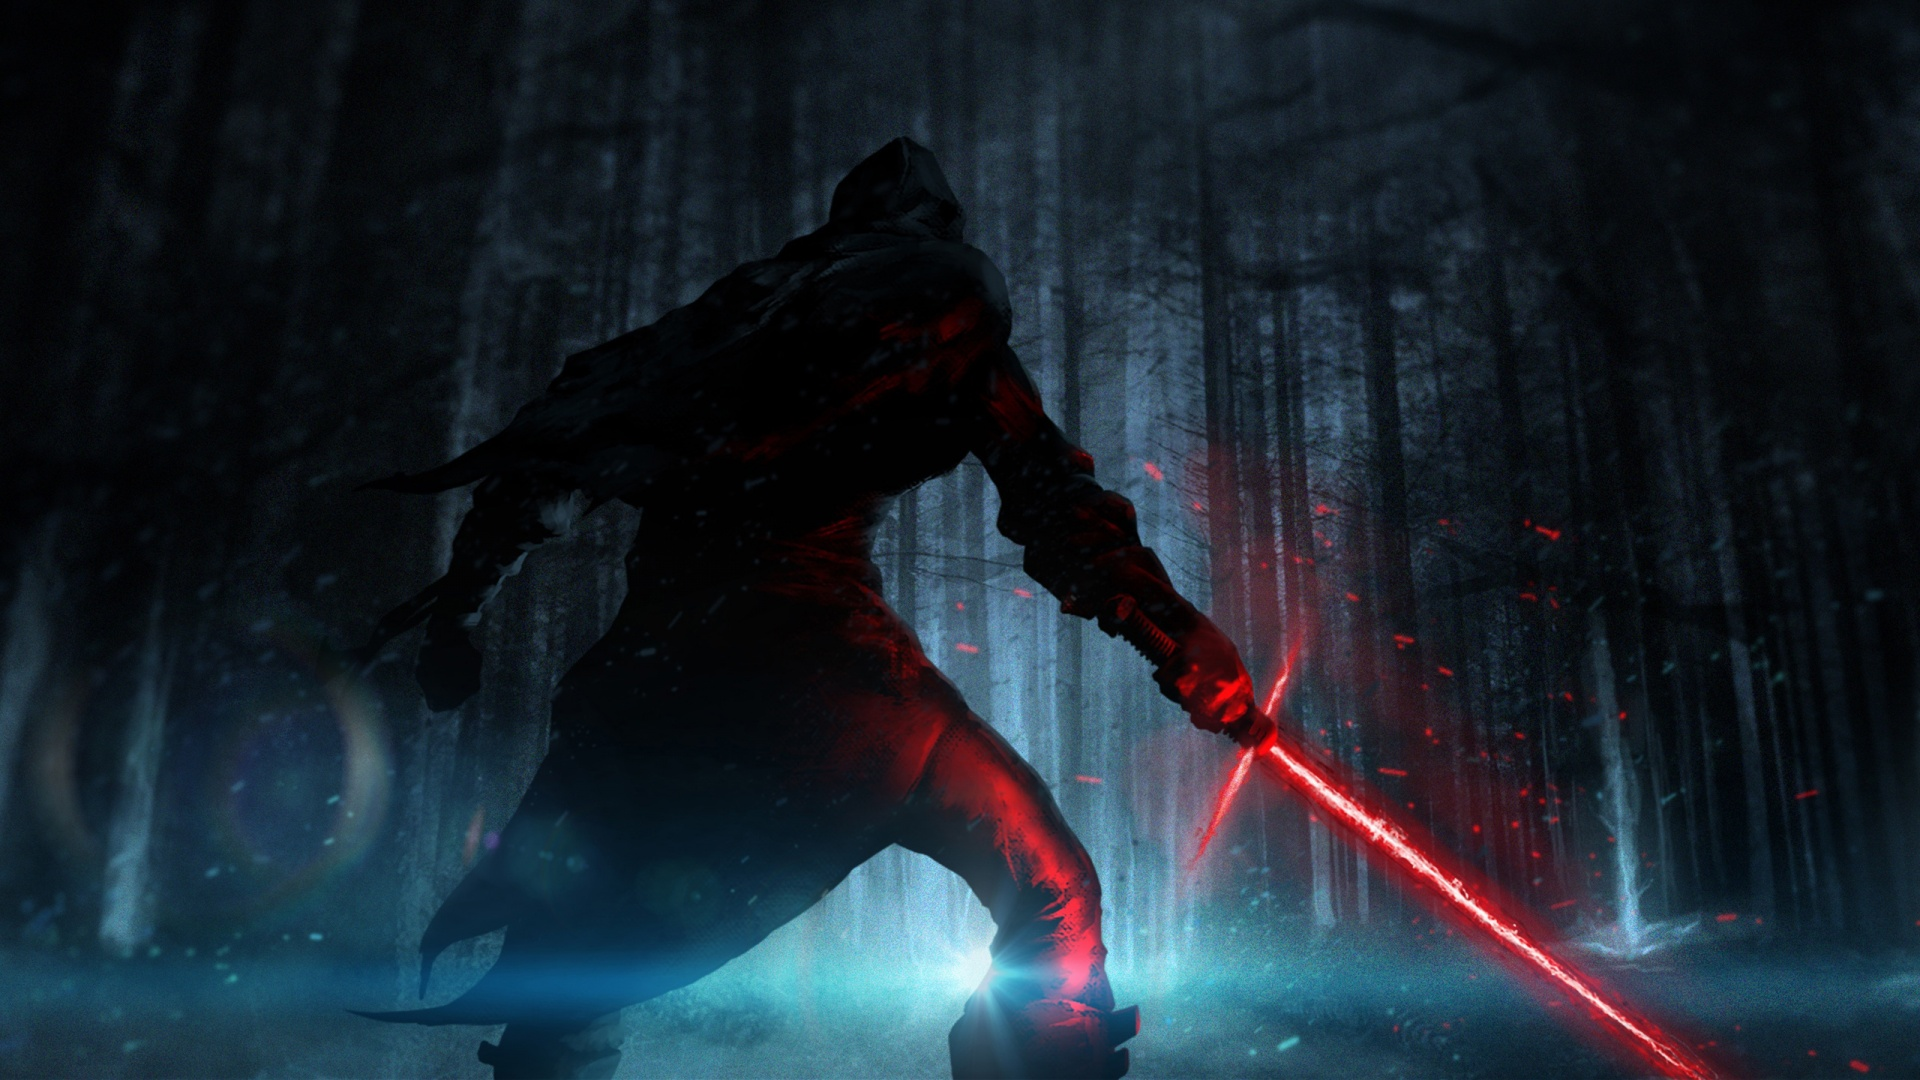 Star Wars Episode VII The Force Awakens Wallpapers HD Wallpapers 1920x1080